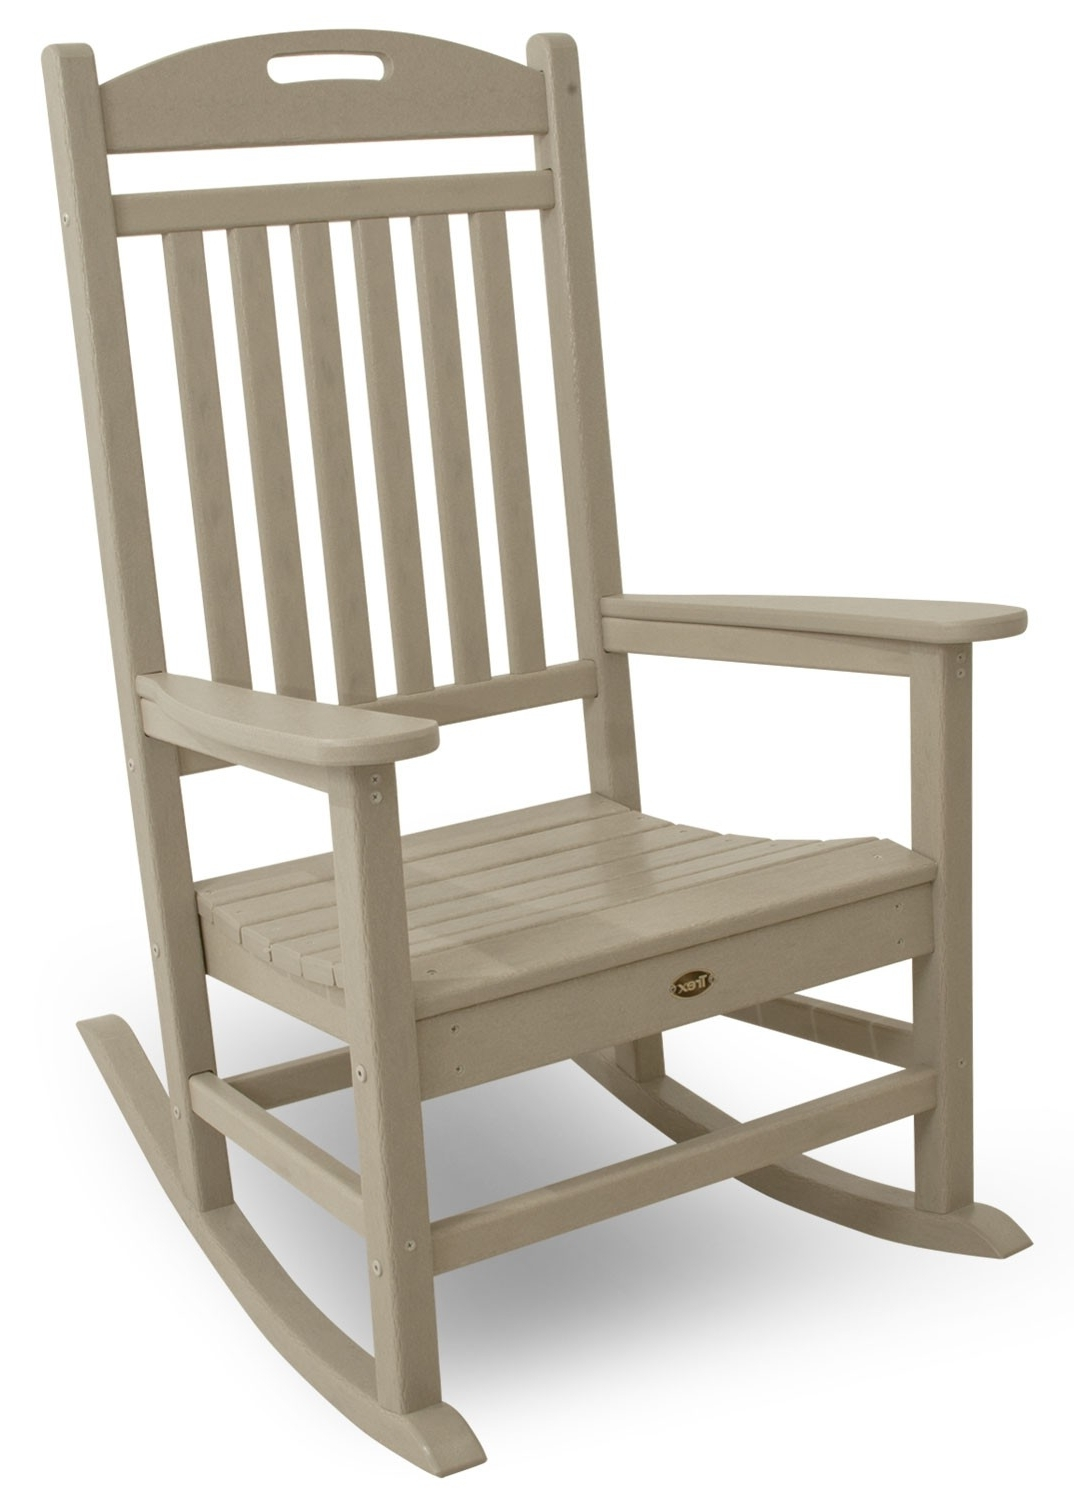 Widely Used Yacht Club Rocking Chair Regarding Patio Rocking Chairs (View 15 of 15)